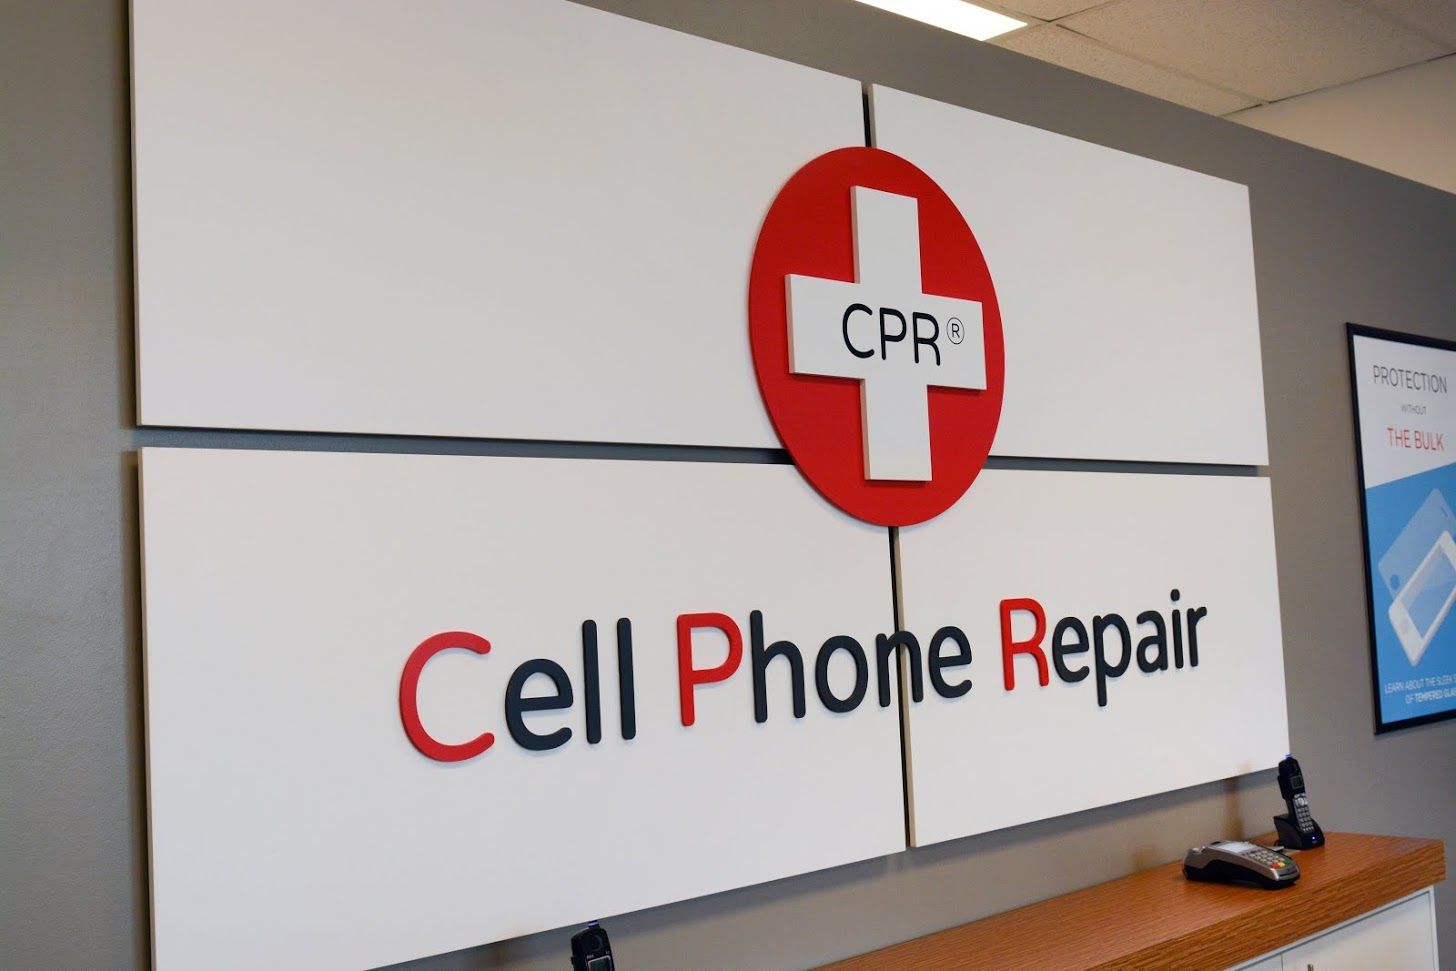 CPR Cell Phone Repair Expands Services in New Mexico with New